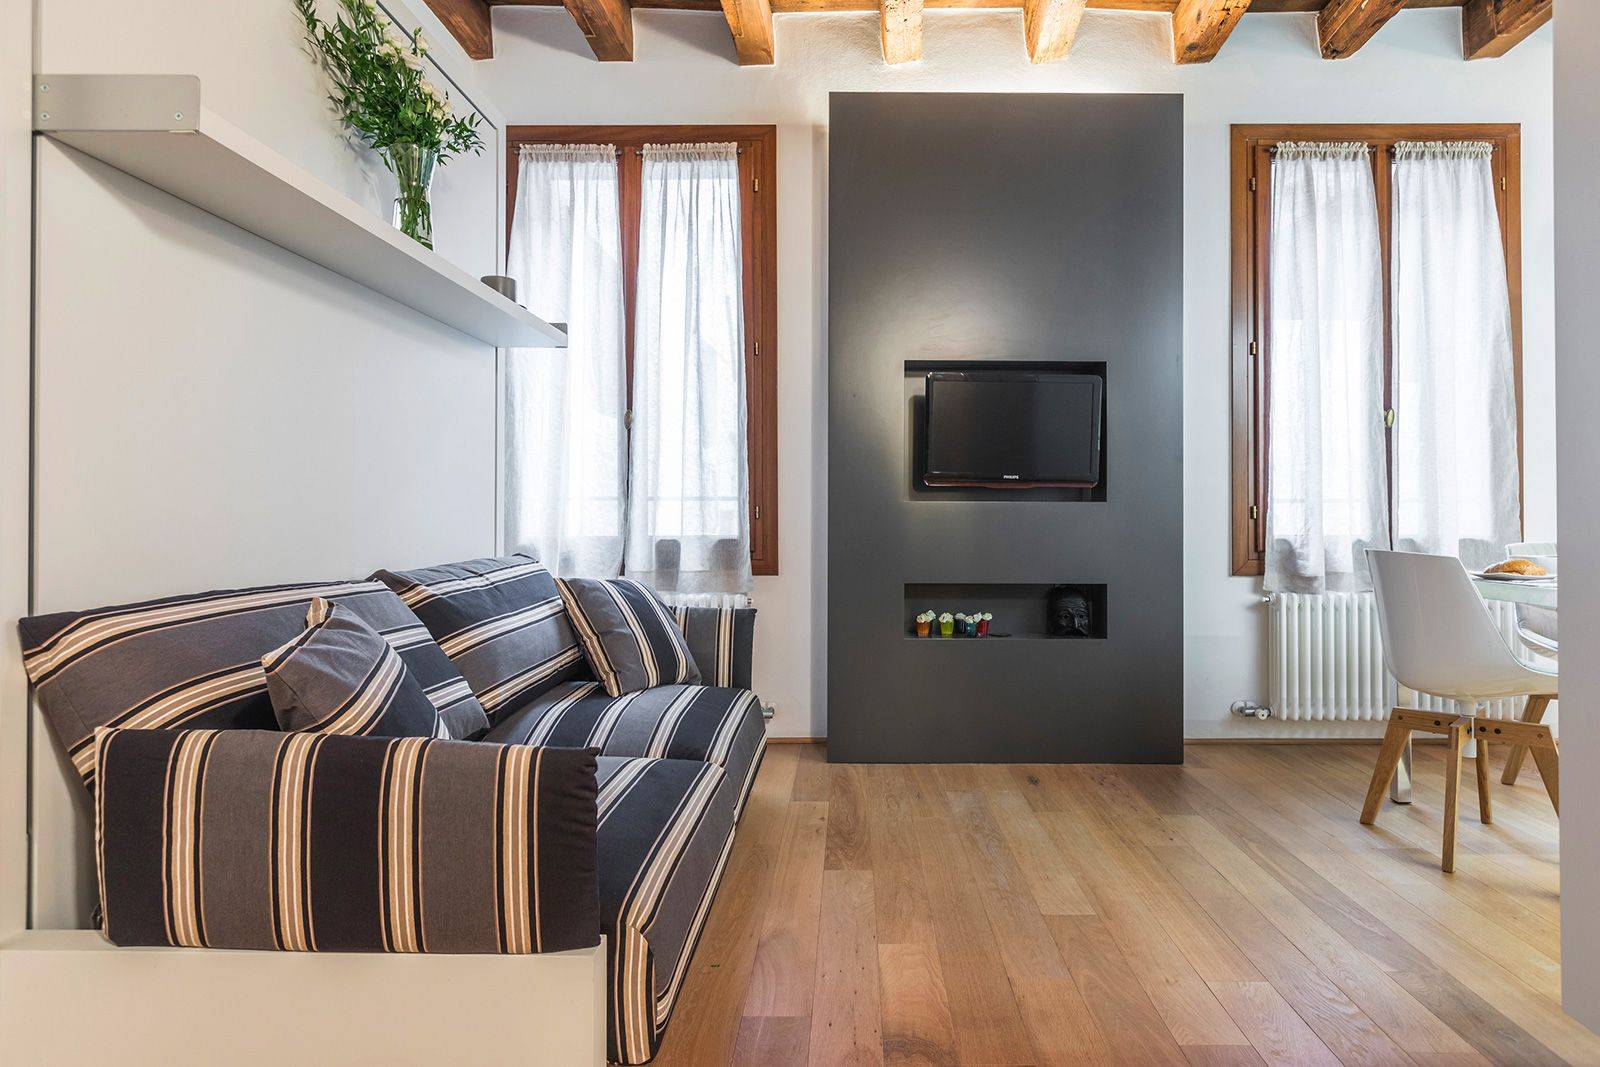 stylish and modular furniture confer an exclusive look to the apartment